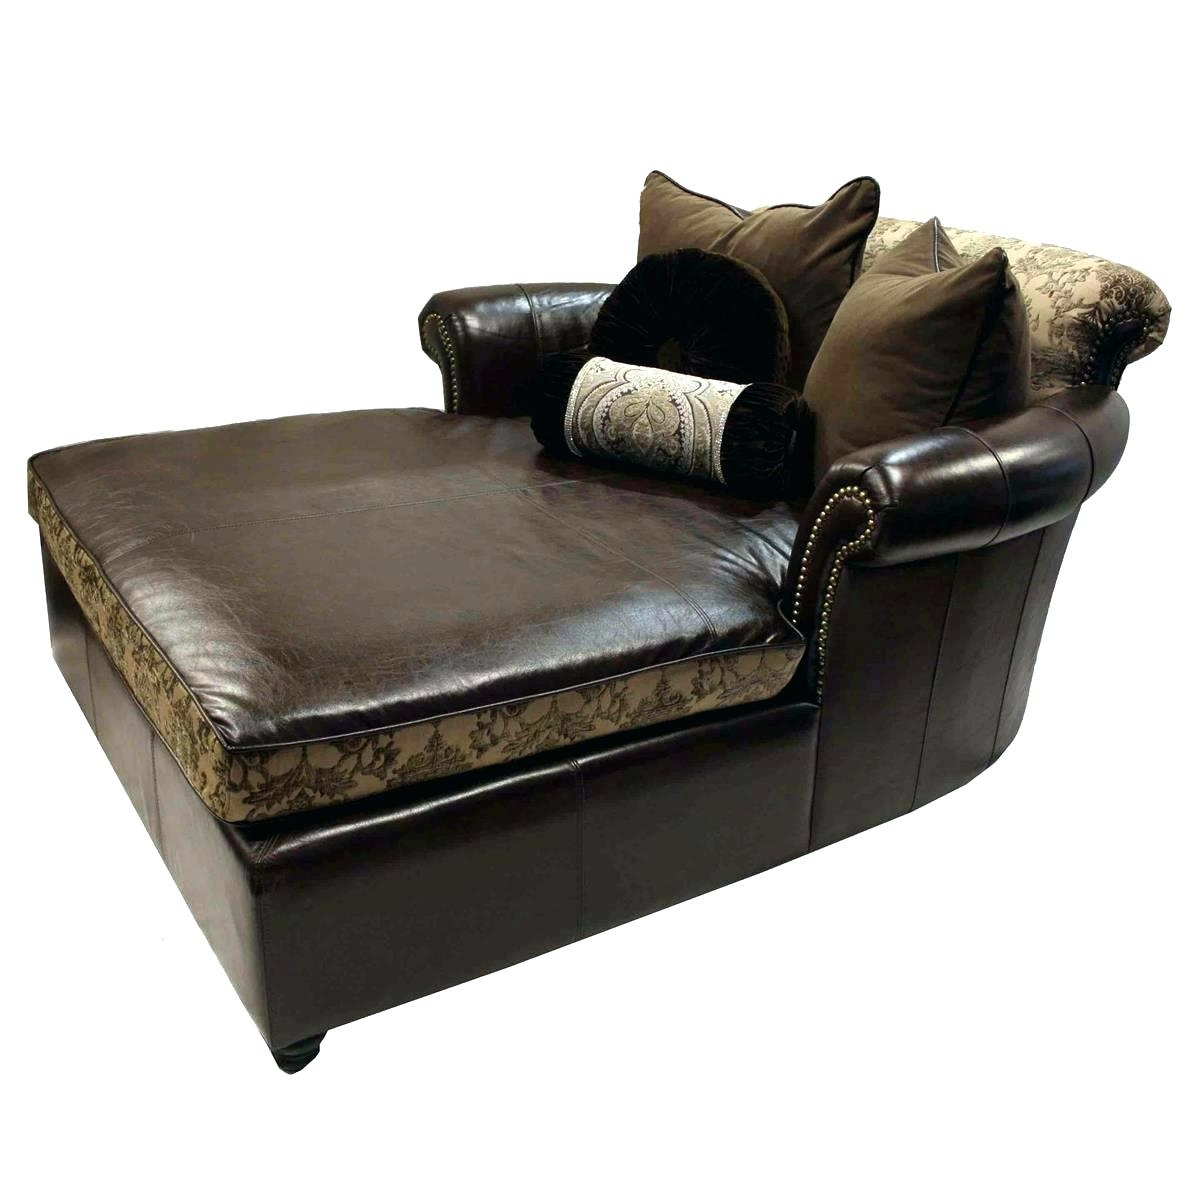 Two Person Chaise Lounge Sofa Chair Outdoor Patio – With Regard To Newest Two Person Chaise Lounges (View 10 of 15)